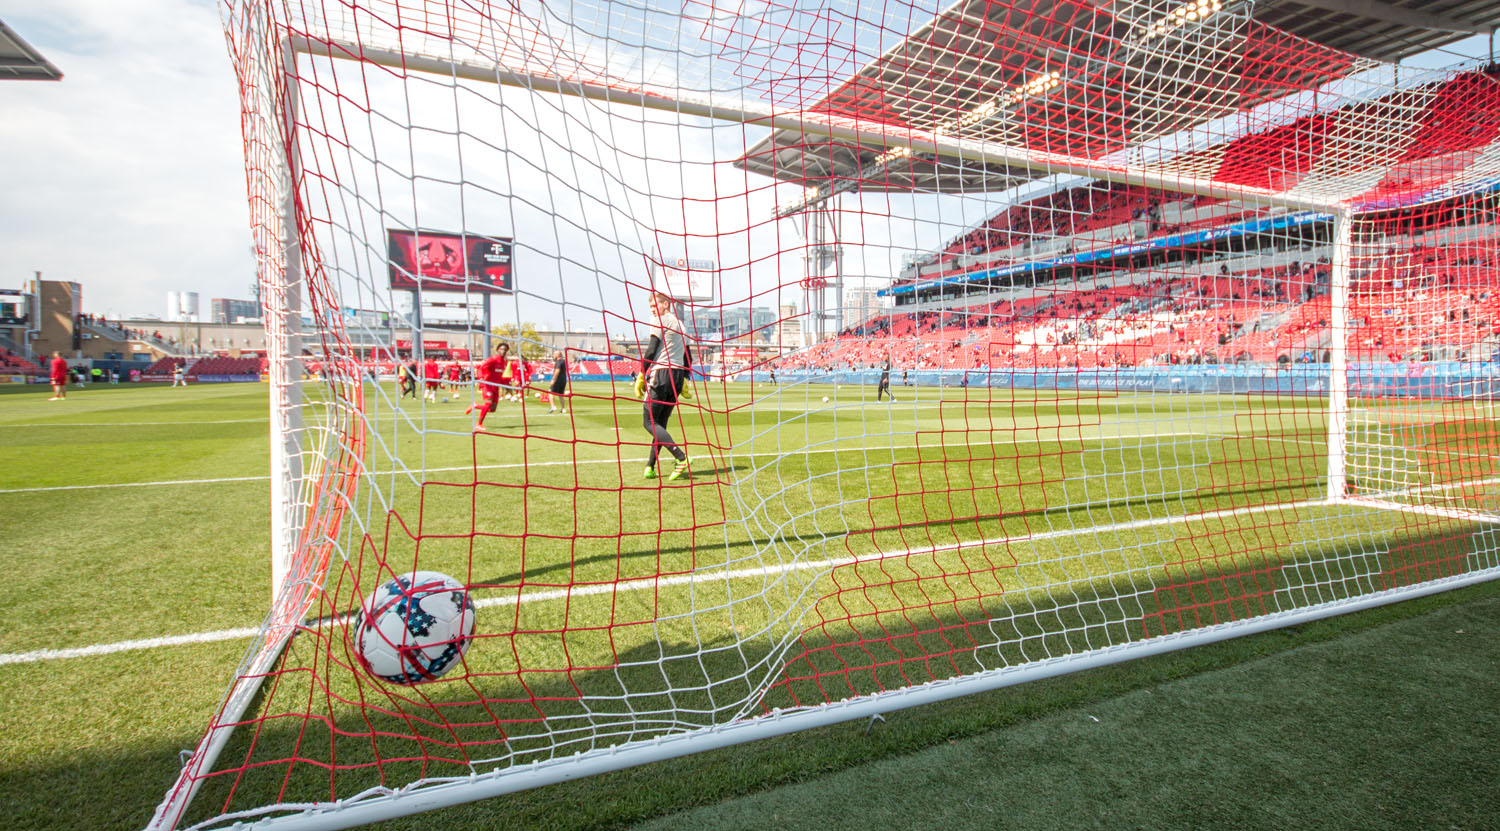 Tosaint Ricketts gets a shot in the net during warm ups before the match against Minnesota United on May 13, 2017.Image by Dennis Marciniak of denMAR Photography.